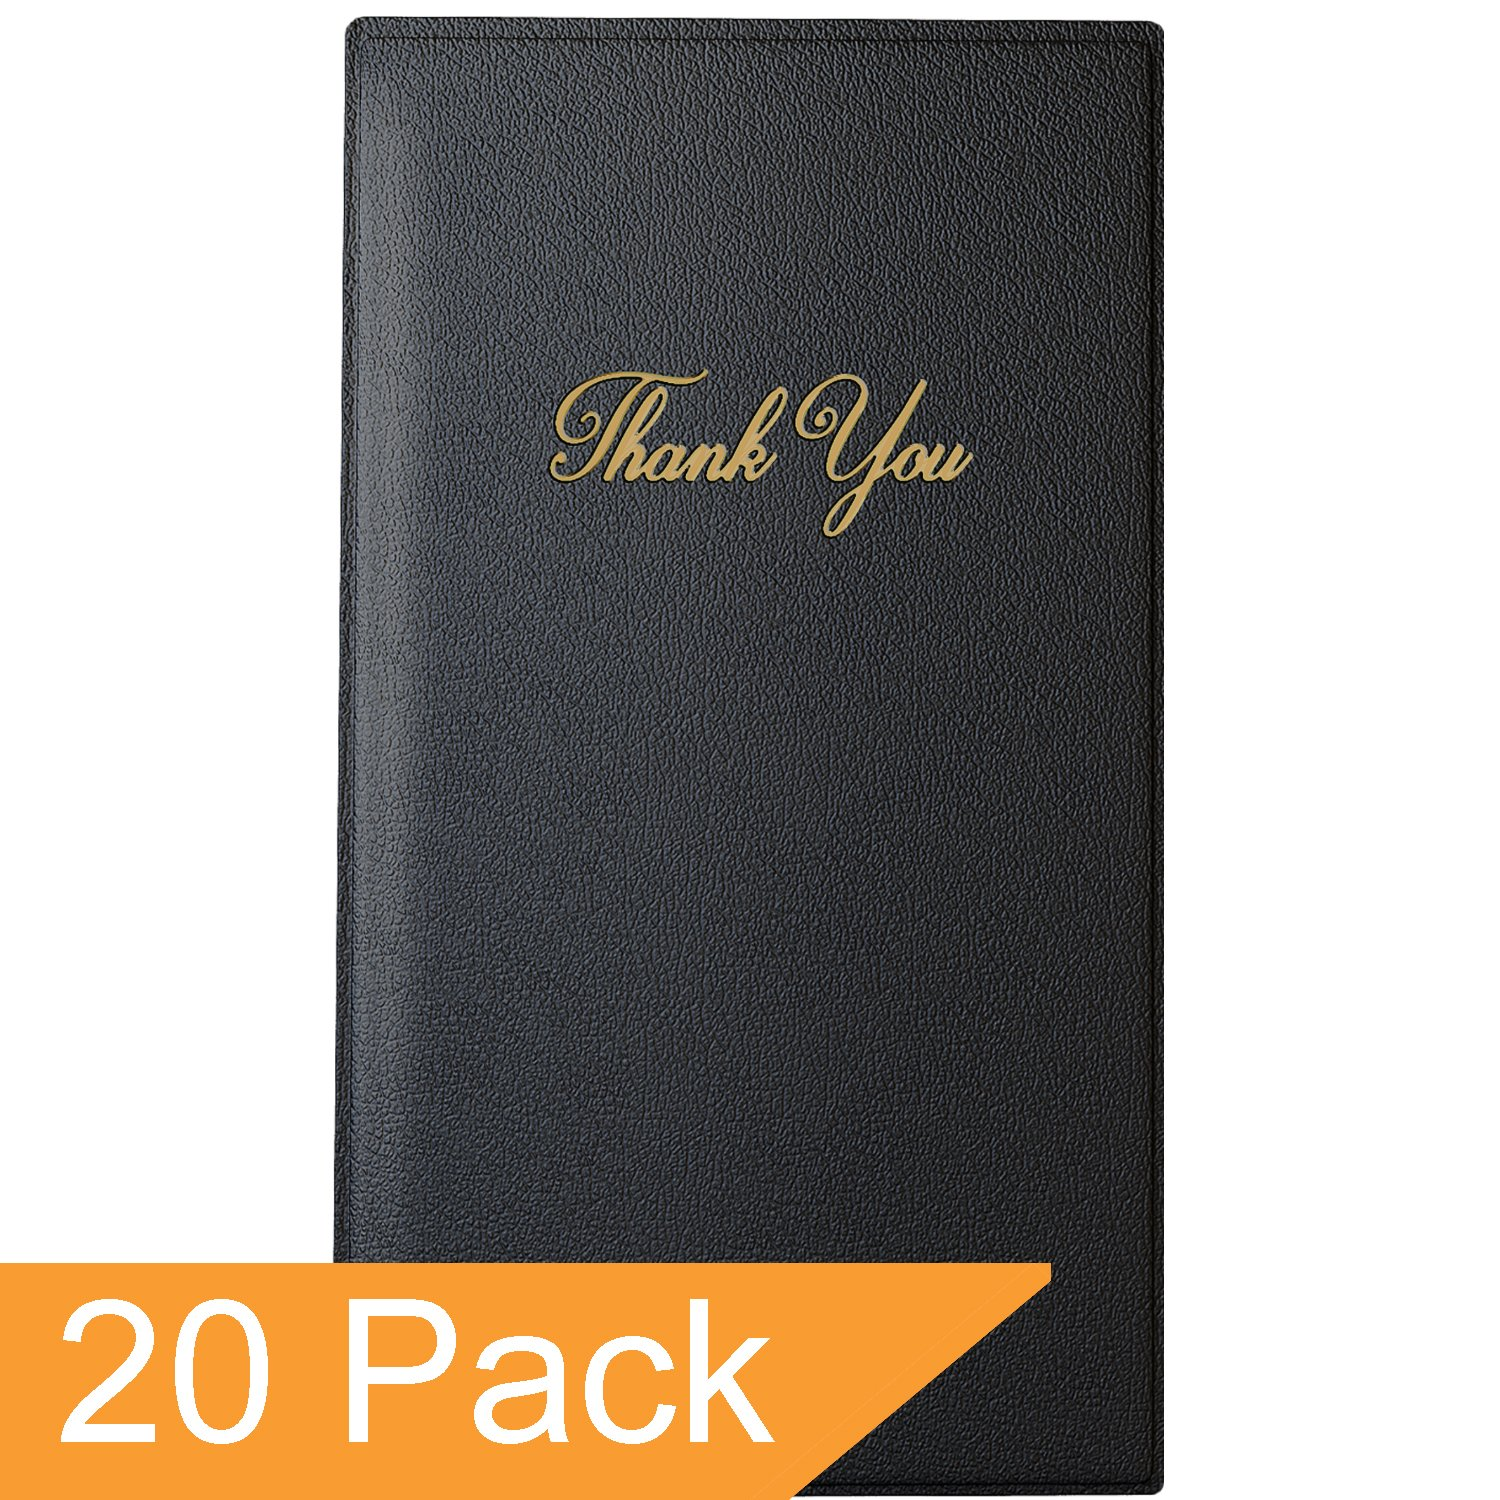 Guest Check Card Holder - Presenter with Gold Thank You Imprint - 5.5'' x 10'' (Standard, Black_20_Pack, 20) by Gold Lion Gear (Image #2)